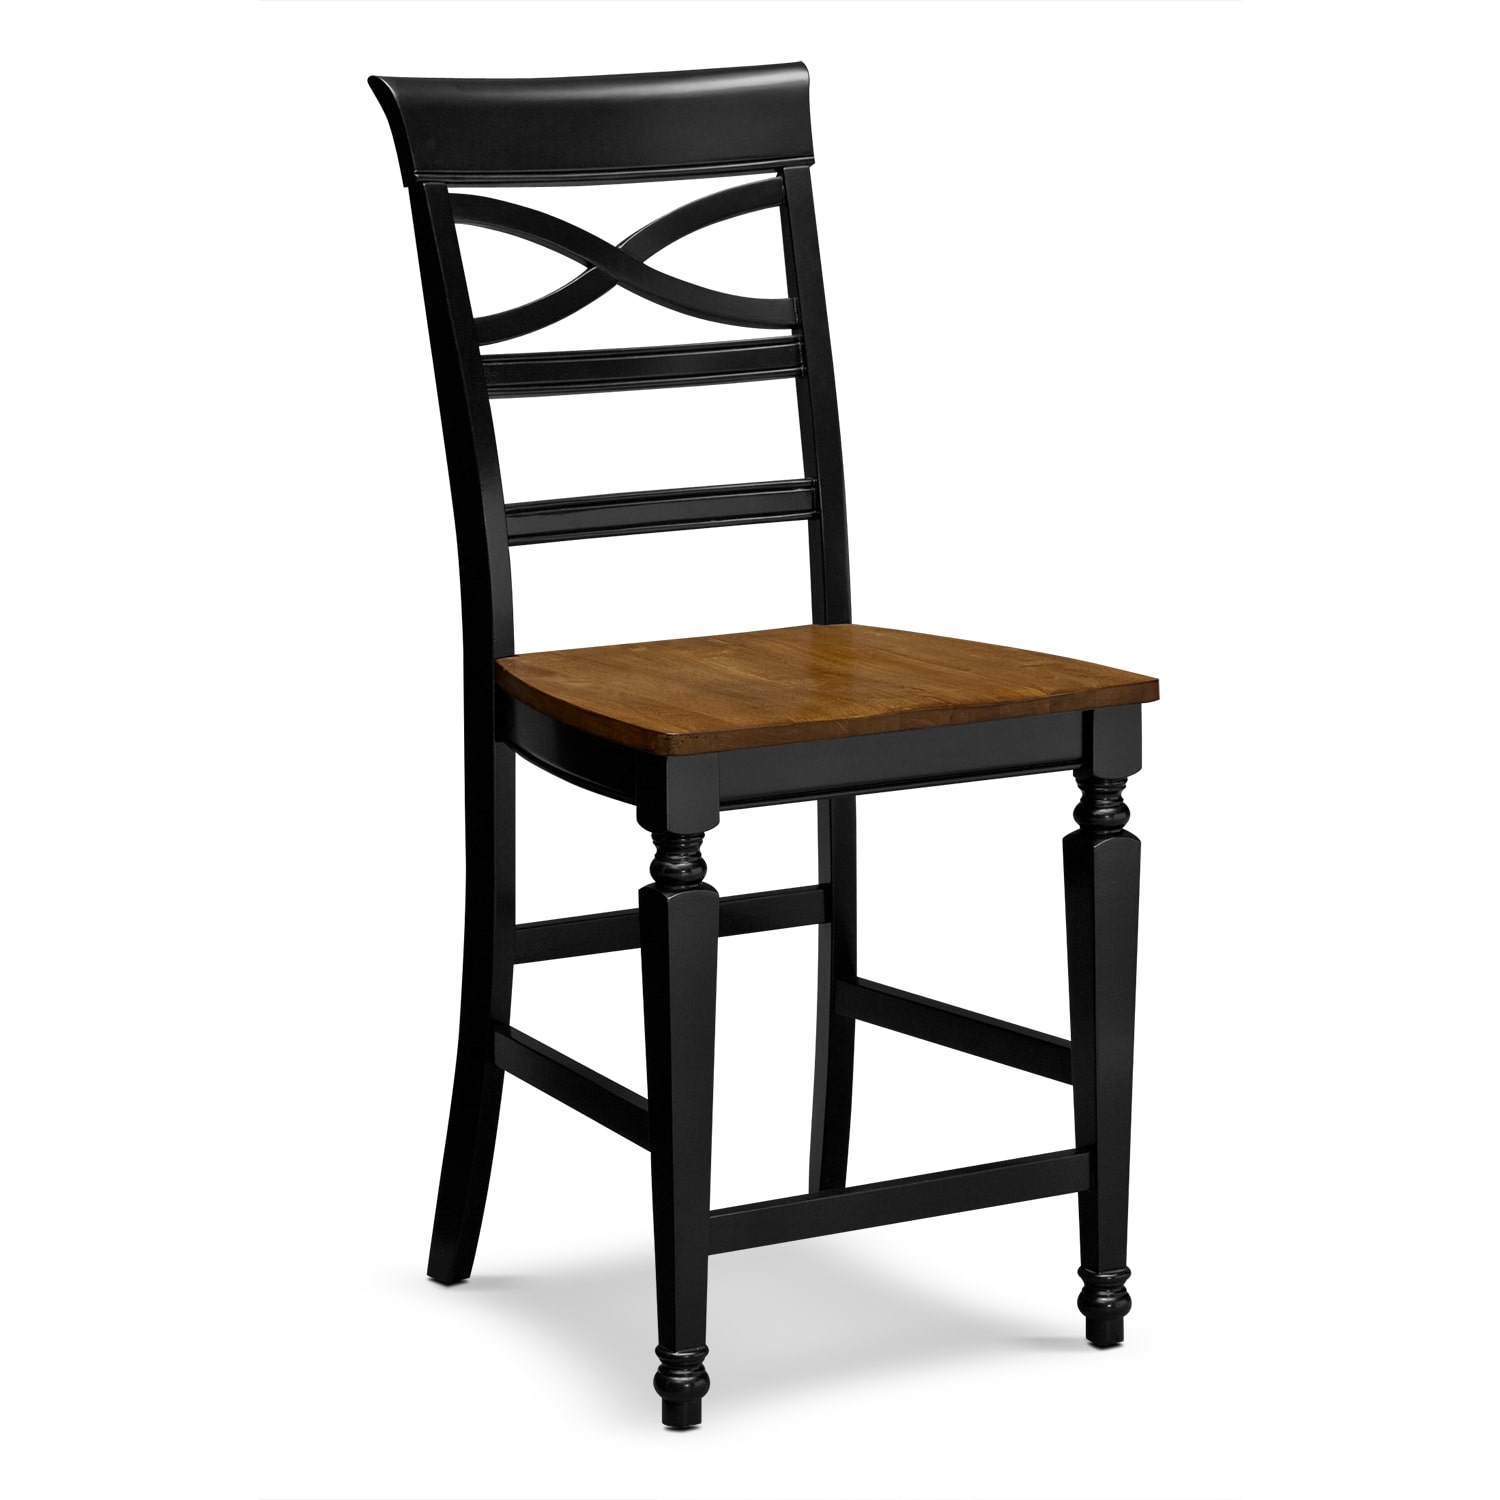 Counter Height Vs Bar Stool : Chesapeake Dining Room Counter-Height Stool - Value City Furniture